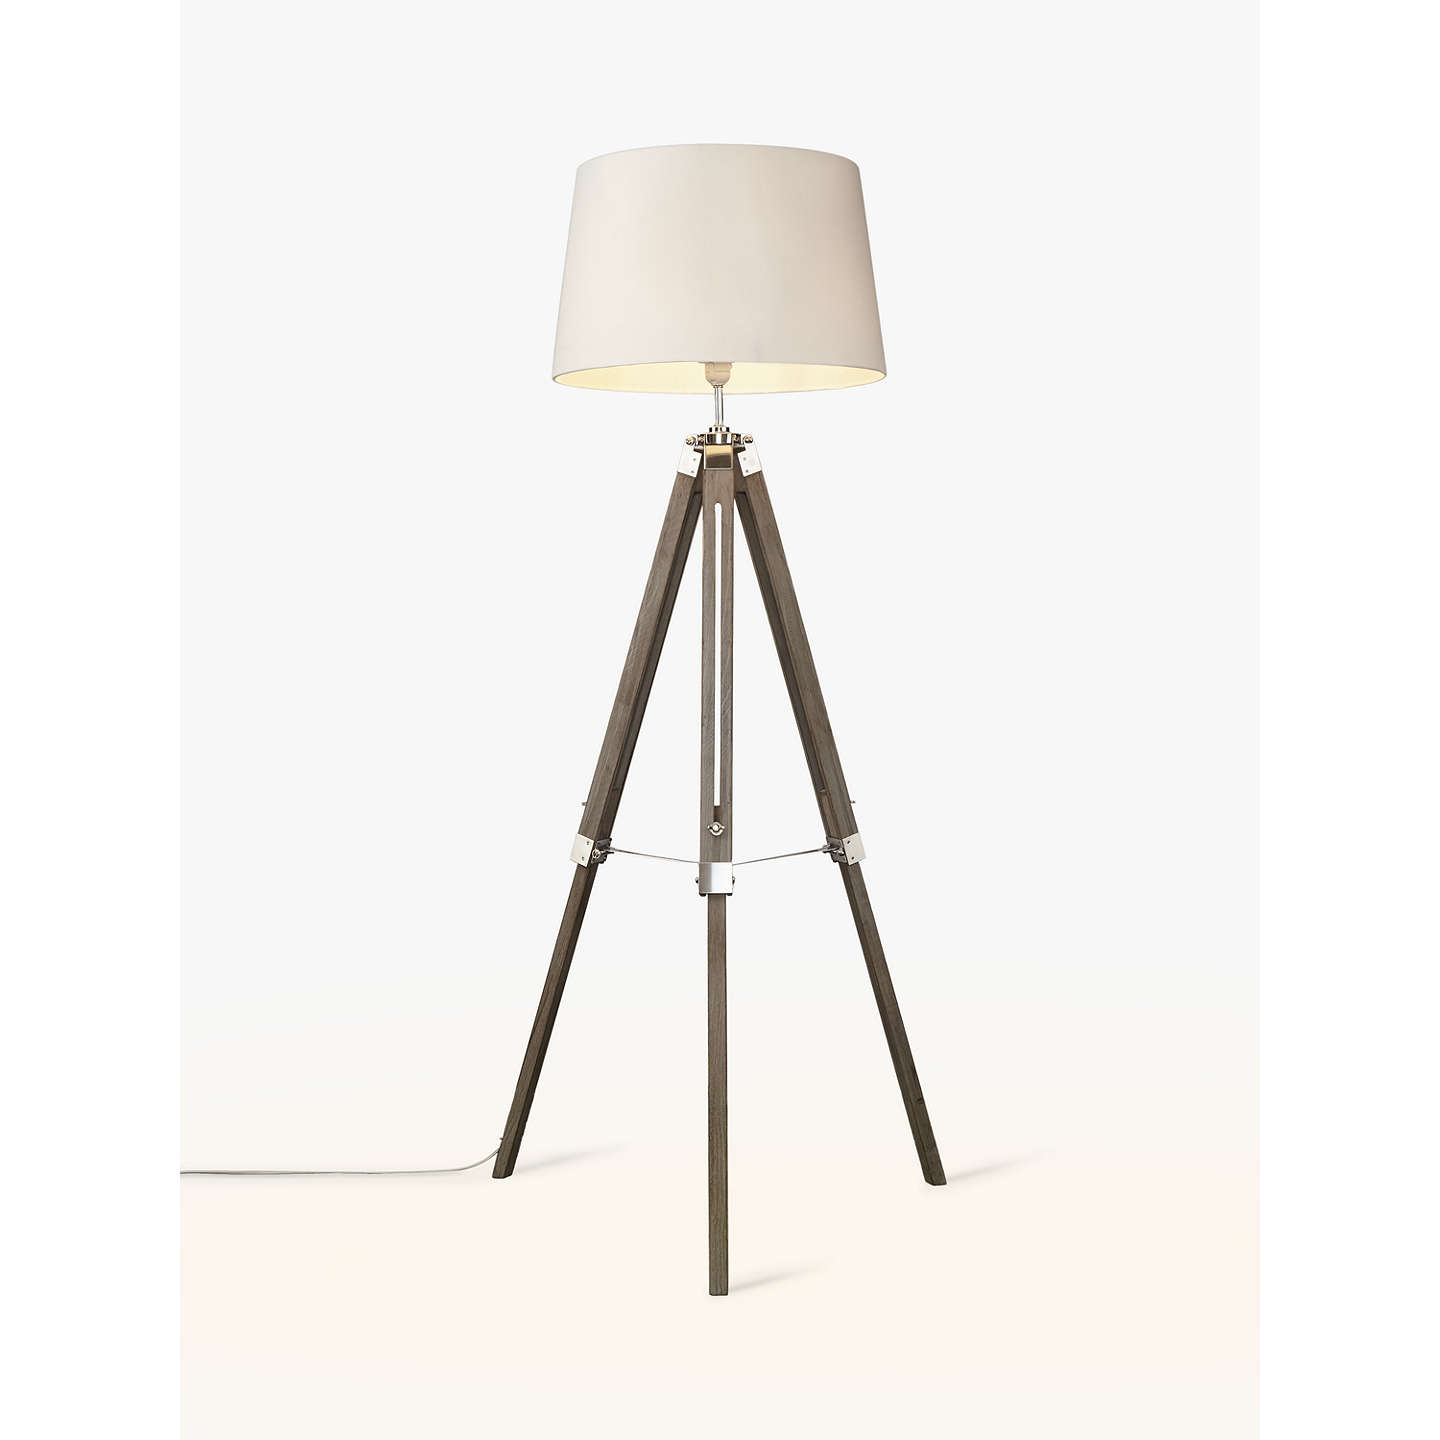 John lewis jacques tripod floor lamp at john lewis buyjohn lewis jacques tripod floor lamp grey online at johnlewis mozeypictures Gallery